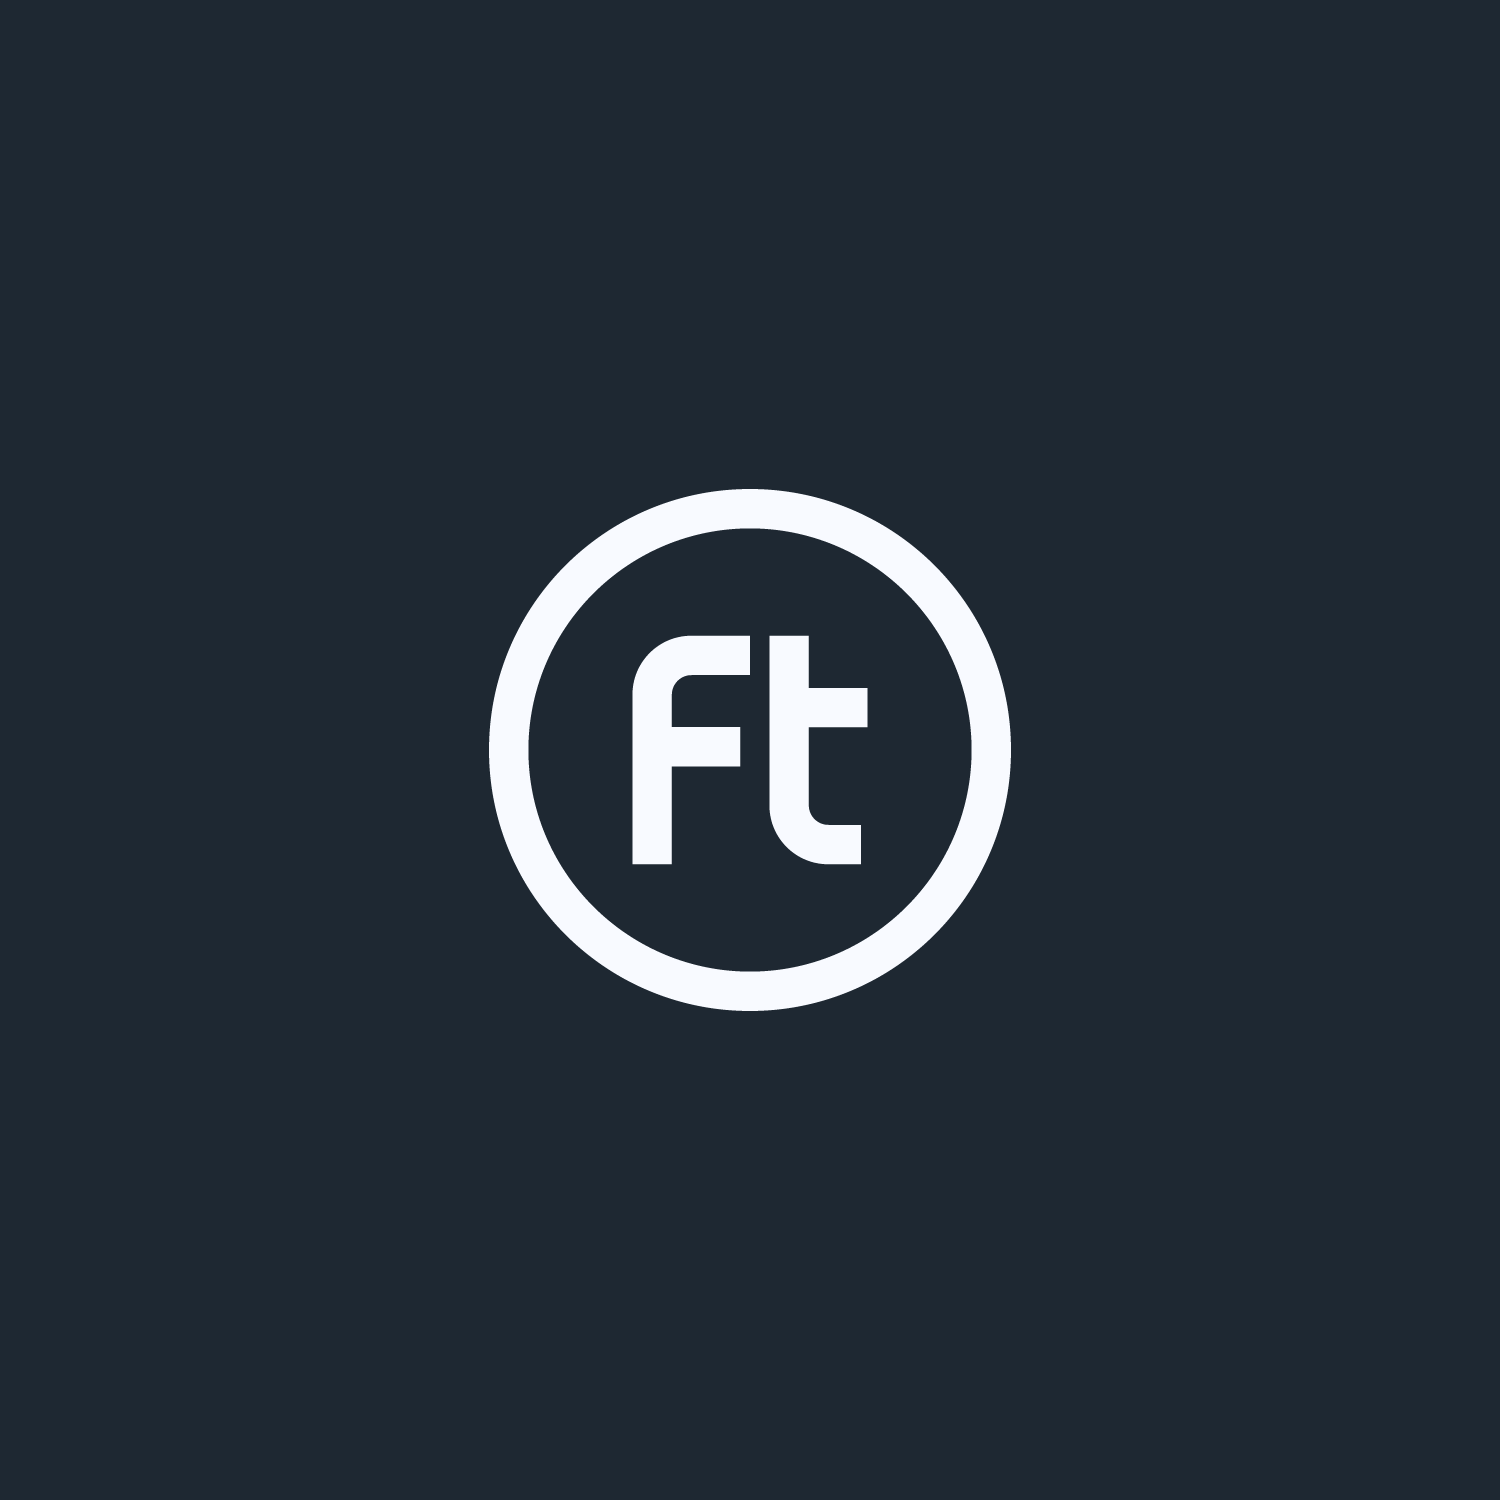 White Flock Together monogram on a charcoal background